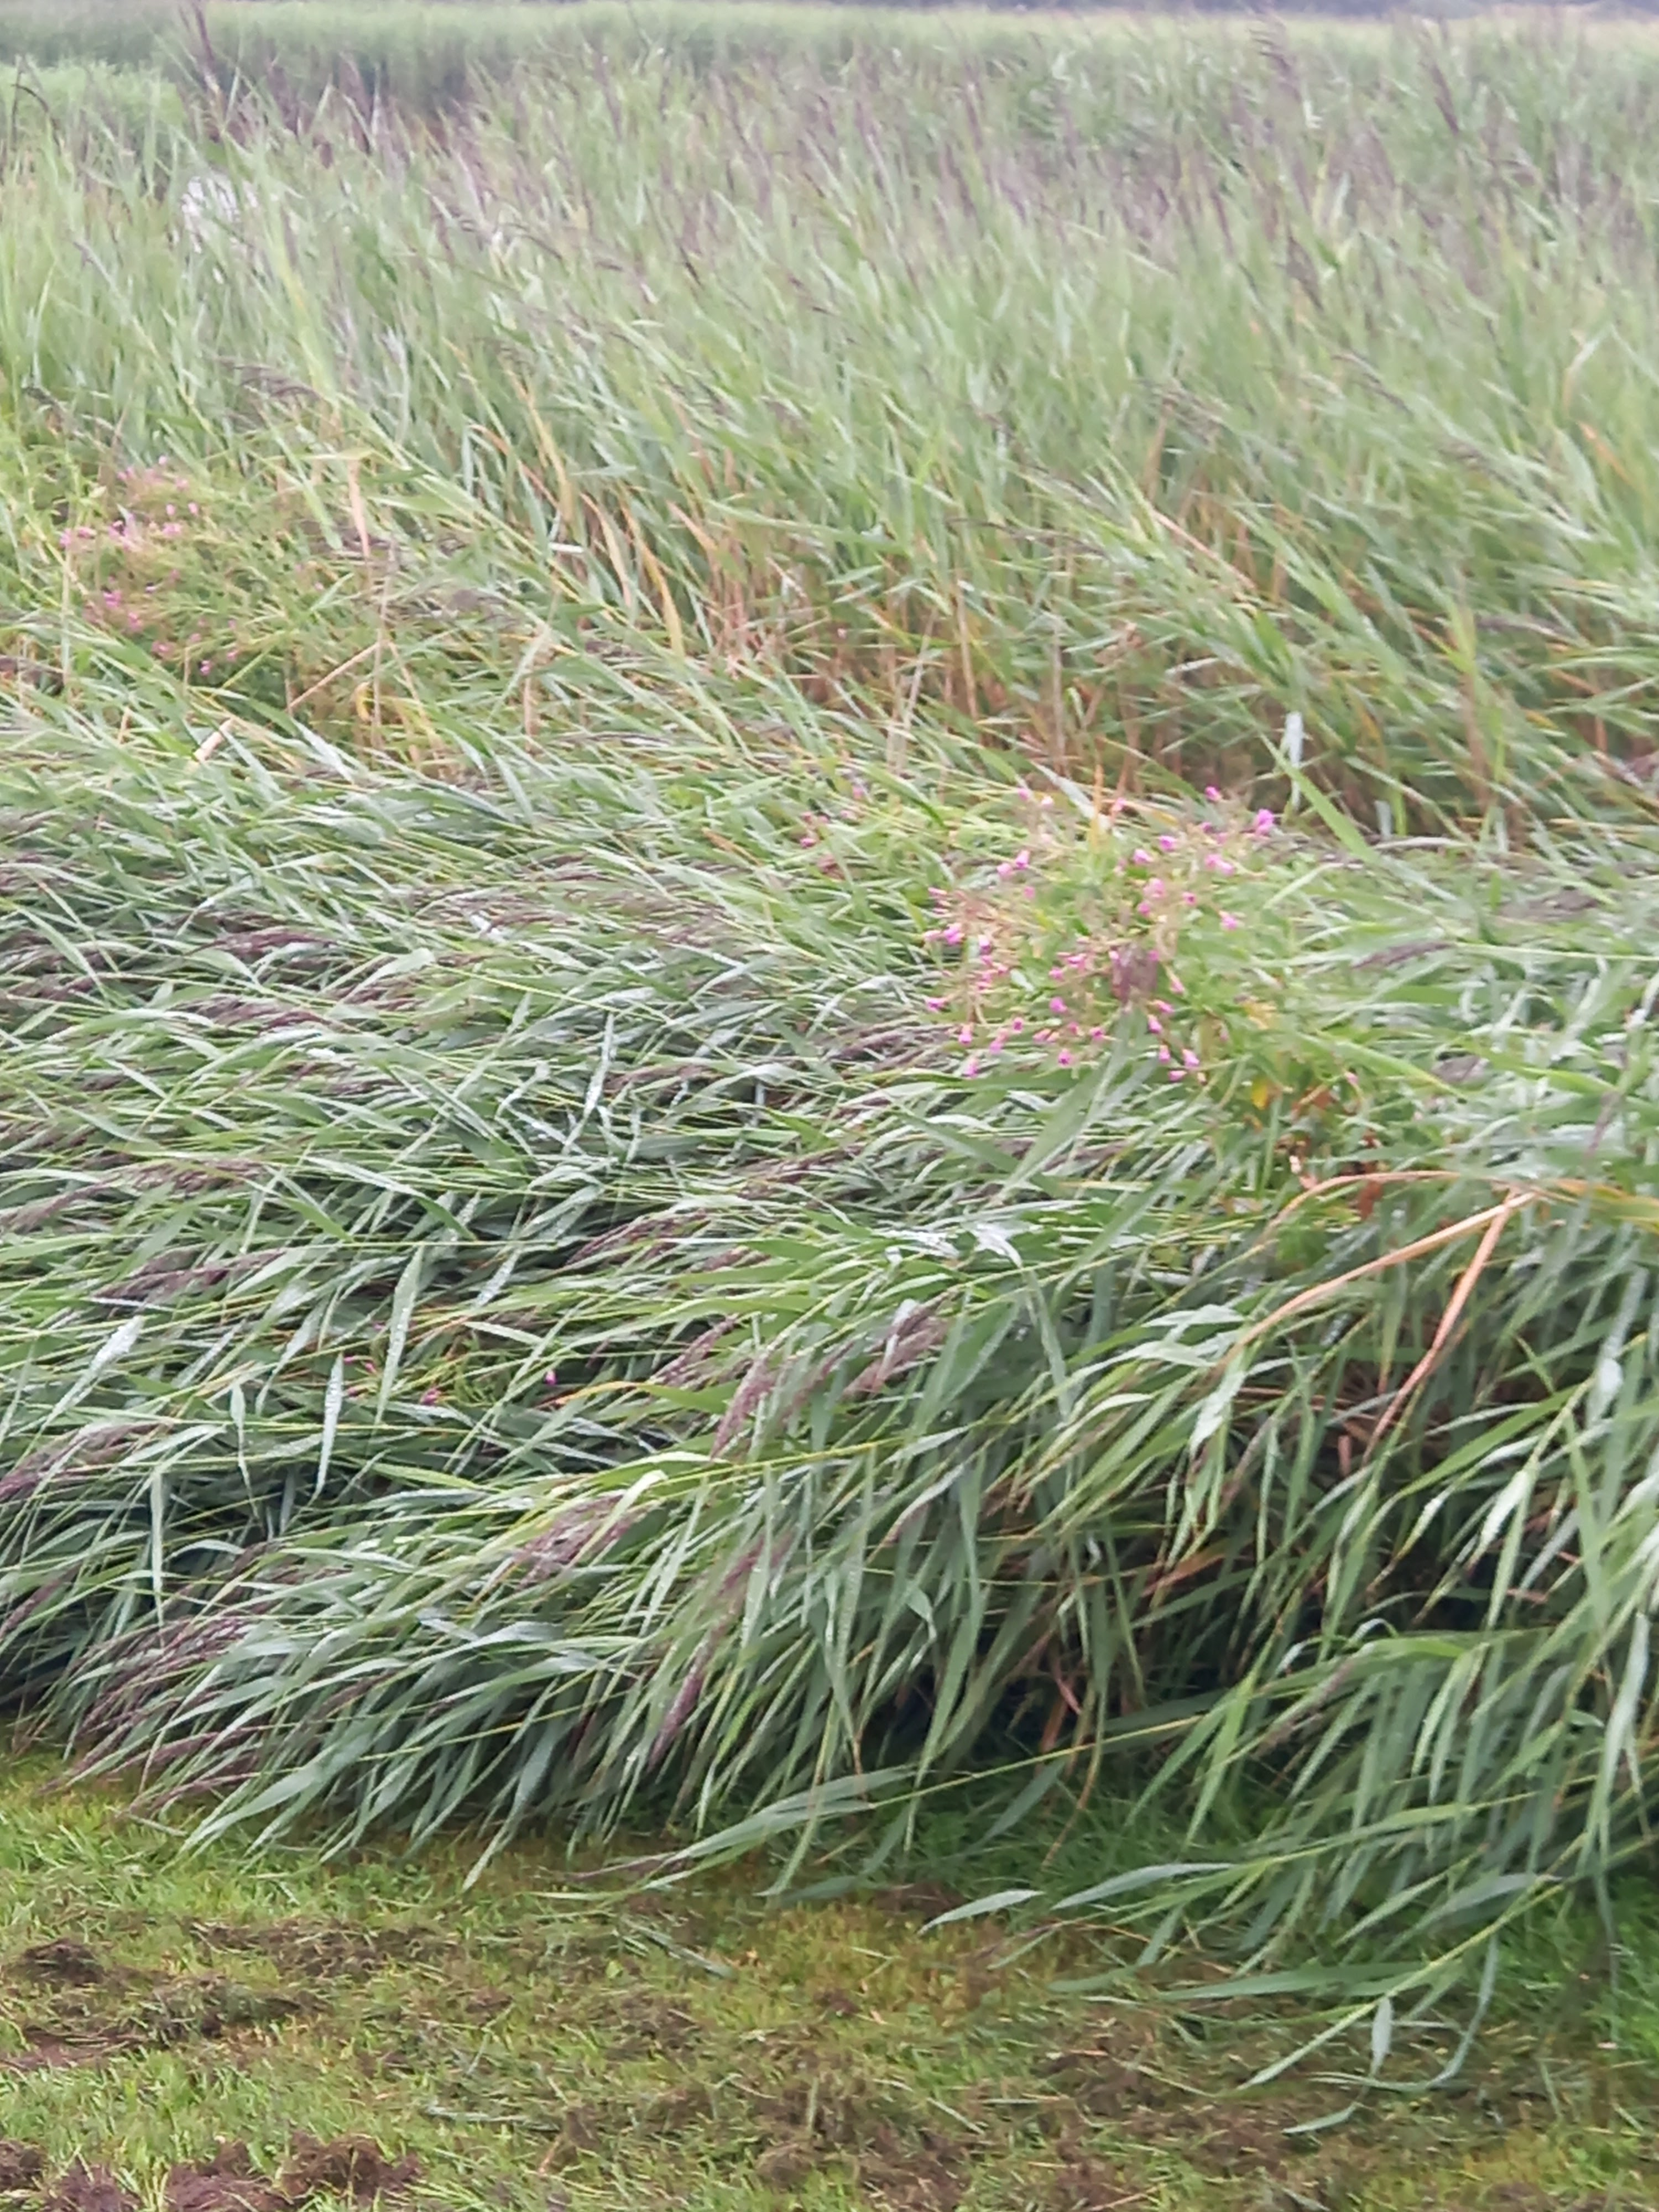 Reeds round the edge of local Abergele pond blown flat by a storm. Photo taken by Diane Woodrow